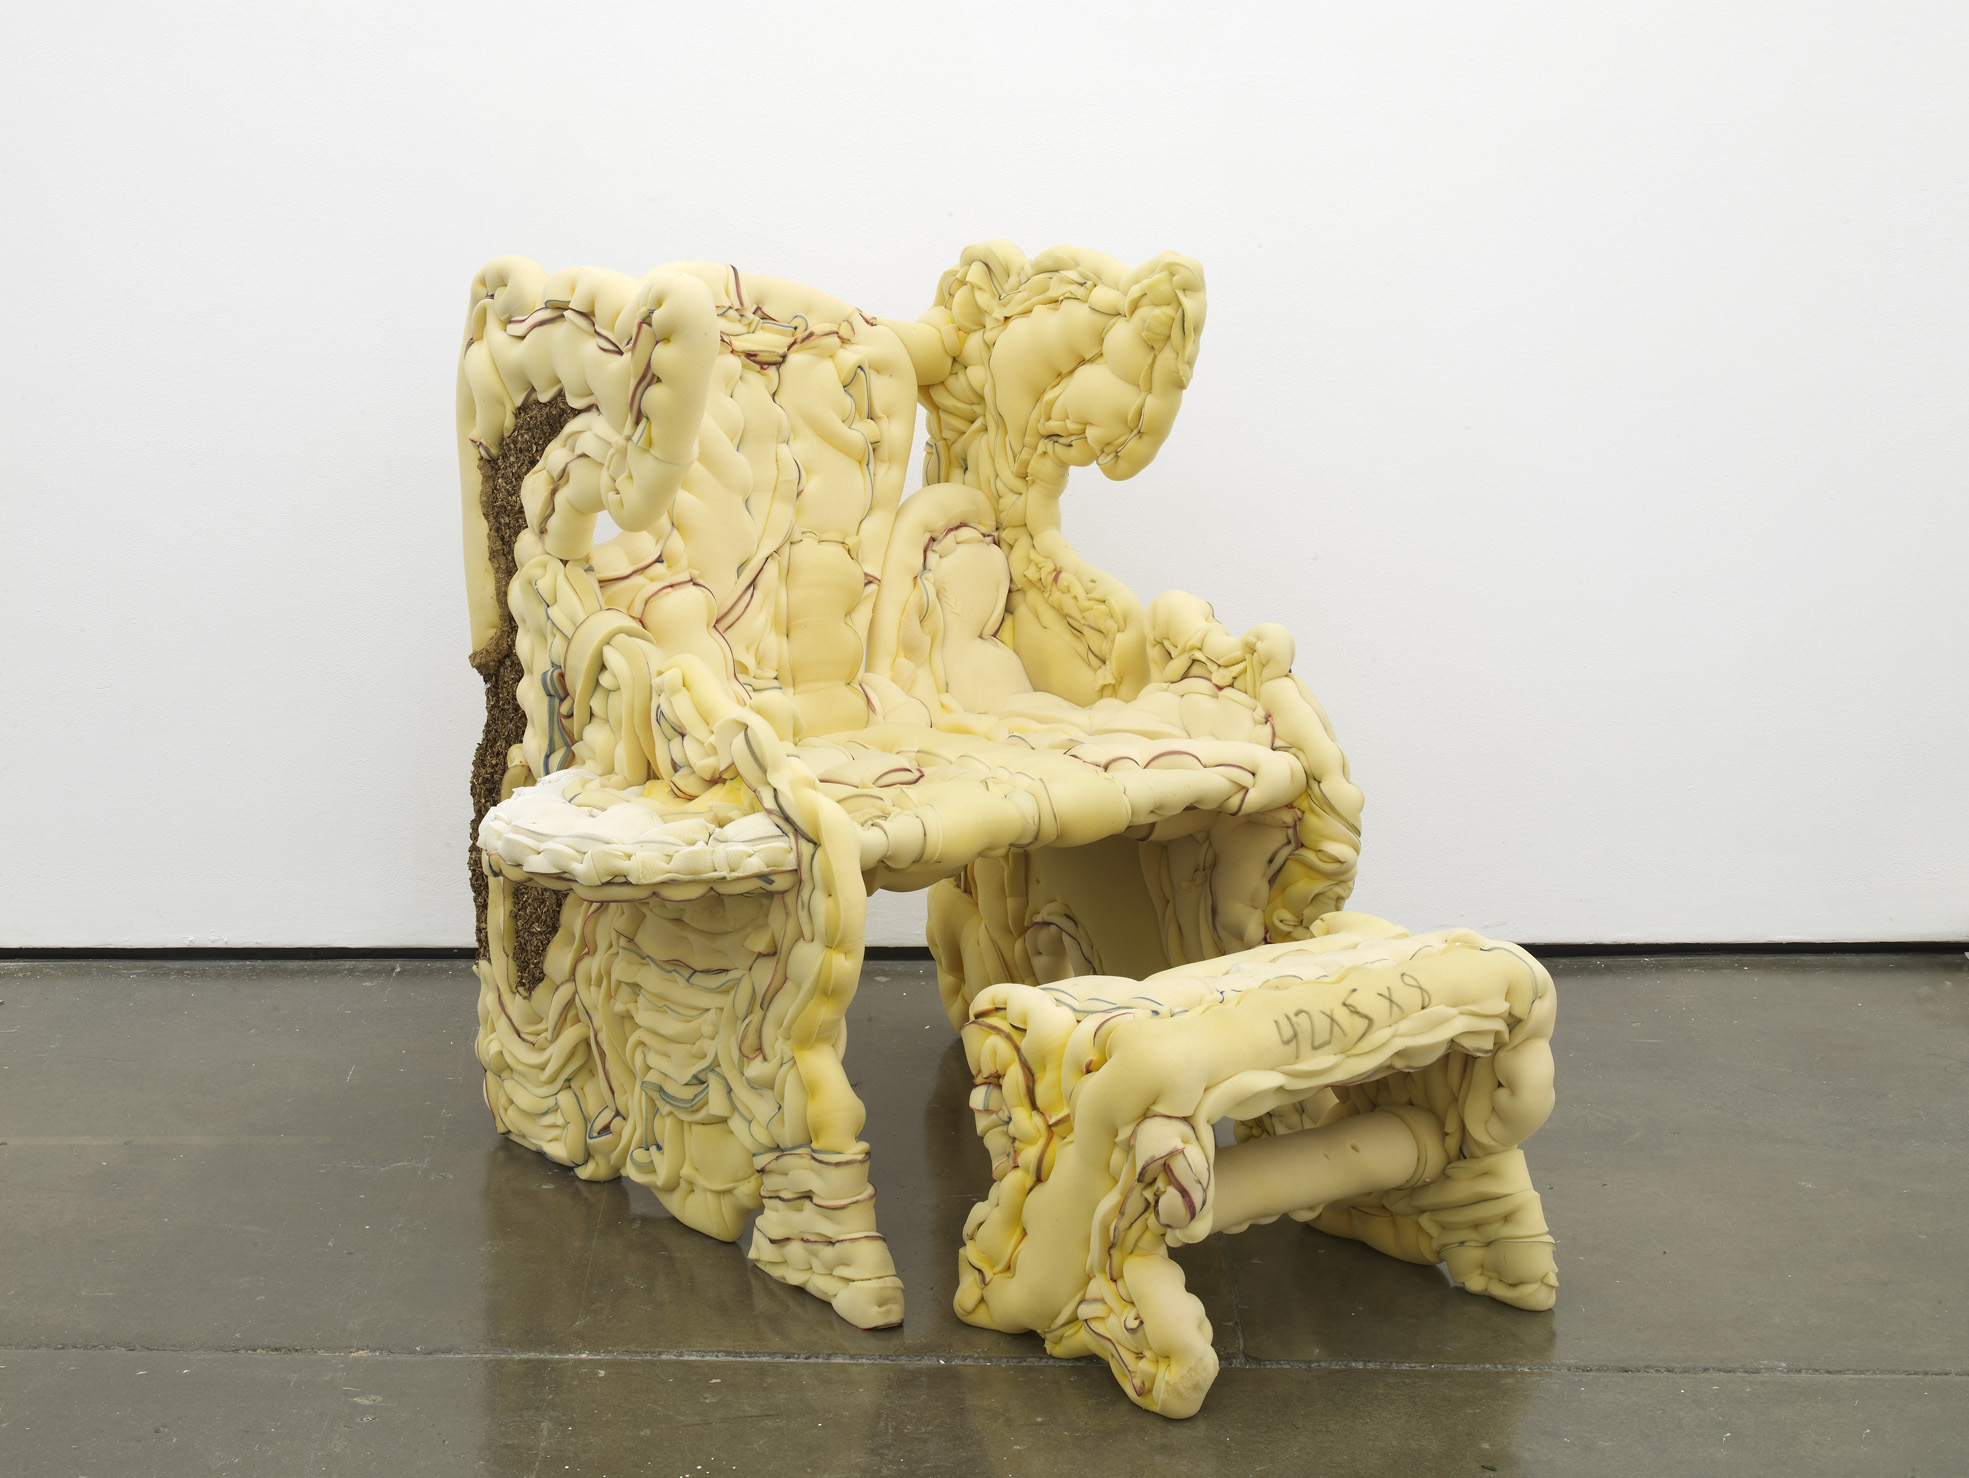 You're There Again Armchair 2015 Plywood, polyurethane foam, sawdust, hardware, ink 109.2 x 101.6 x 78.7 cm / 43 x 40 x 31 in